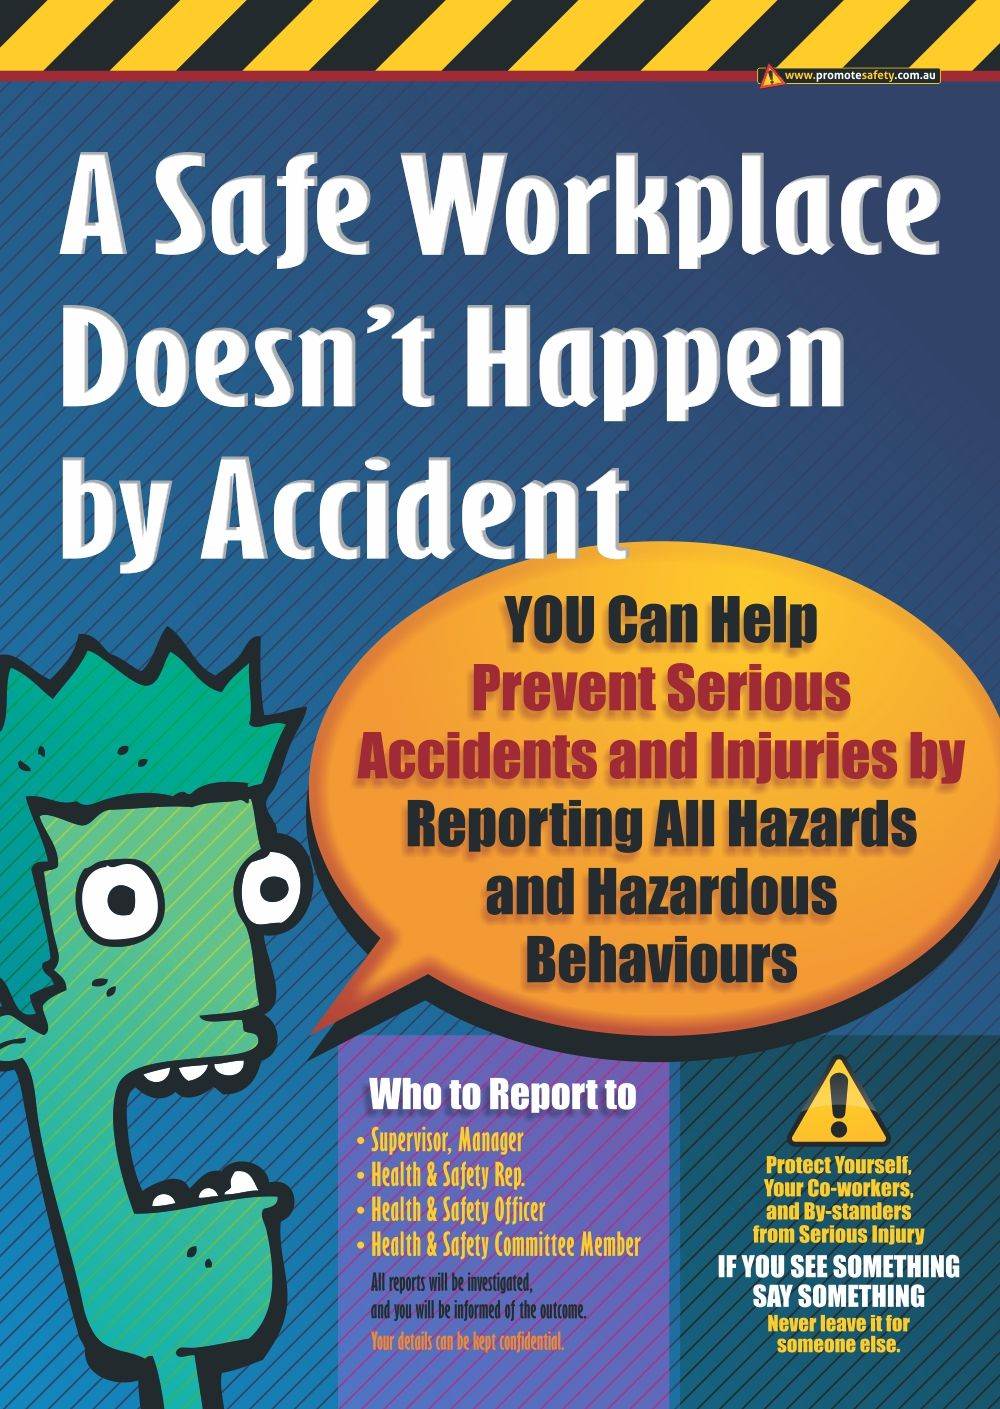 One of the main causes of serious workplace injury is that